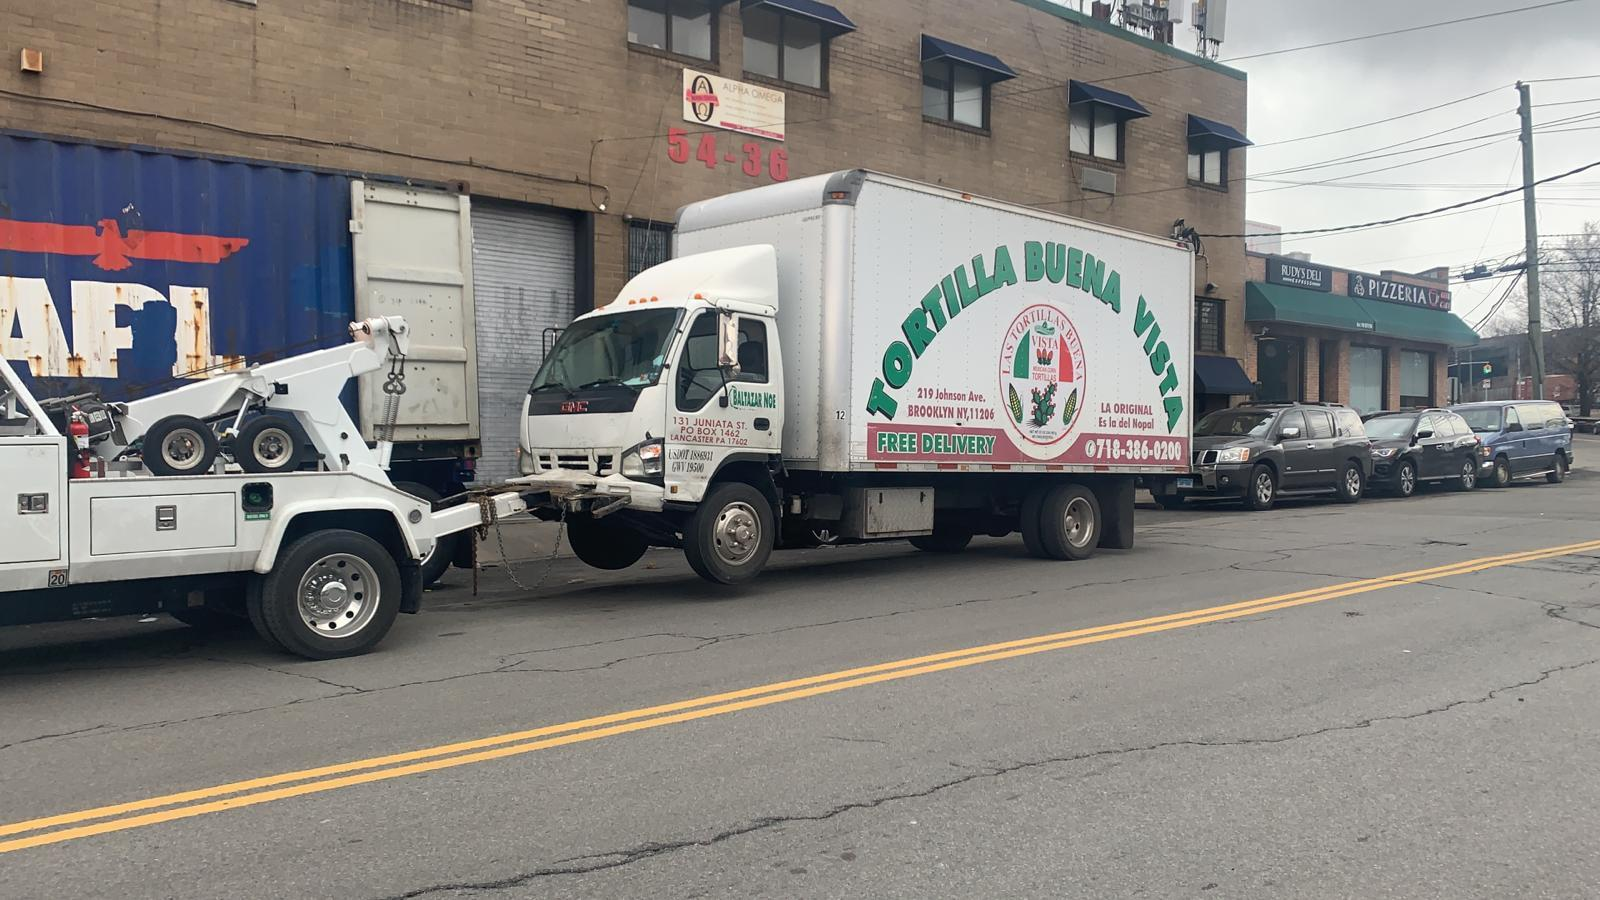 Heavy Duty Towing Service Near Me Intra Towing Nyc 718